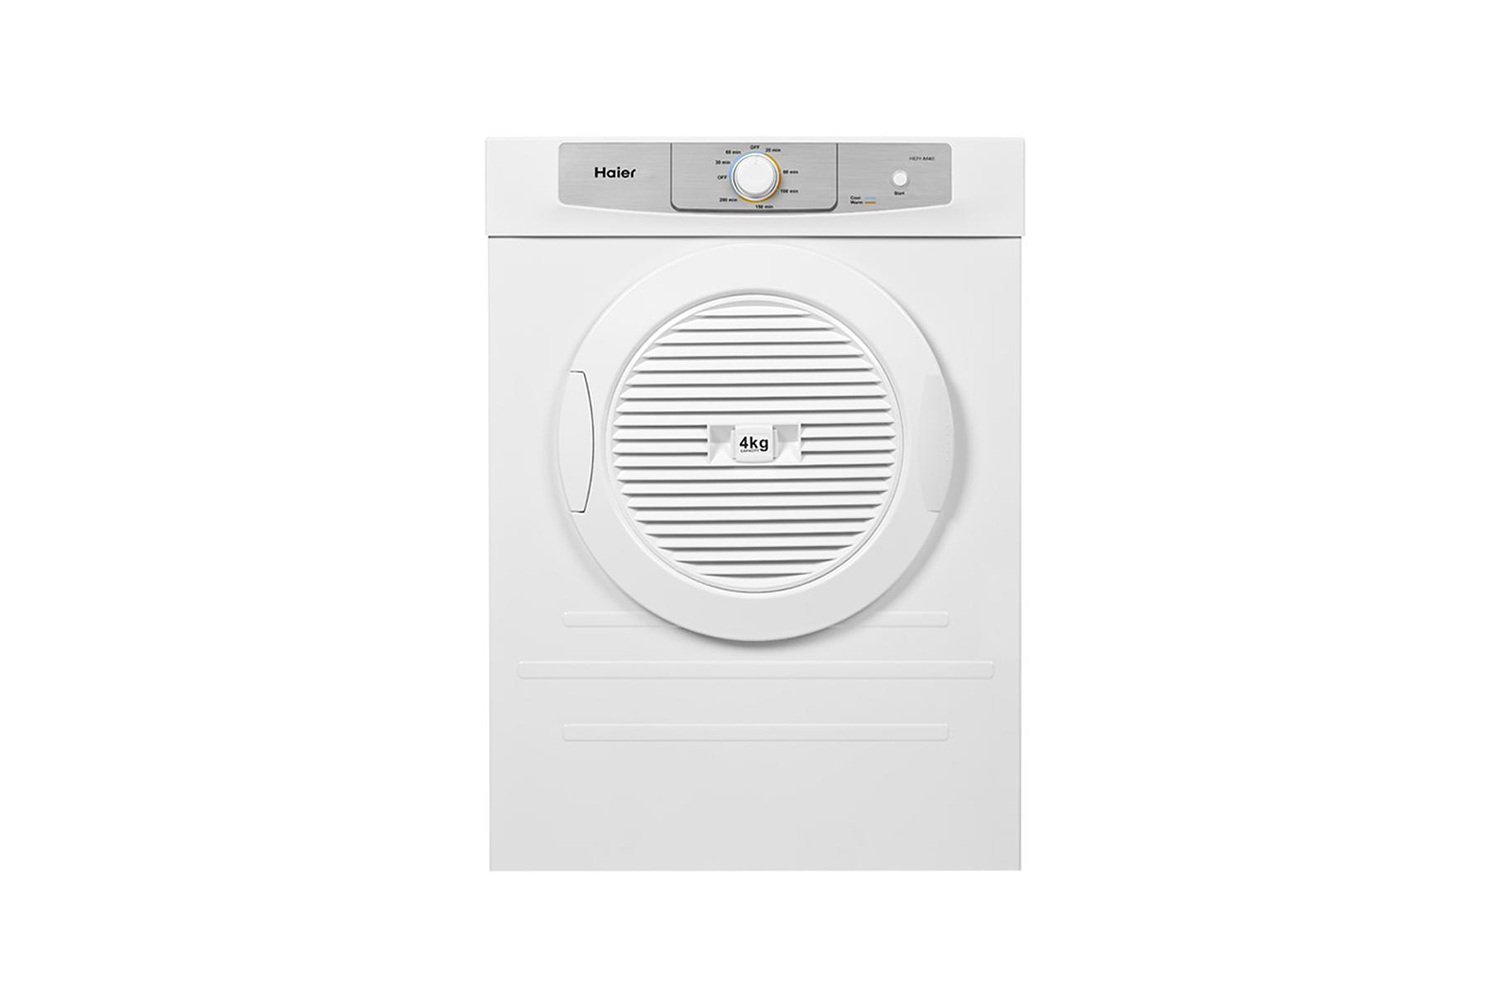 Clothes Dryers: Haier Clothes Dryer on